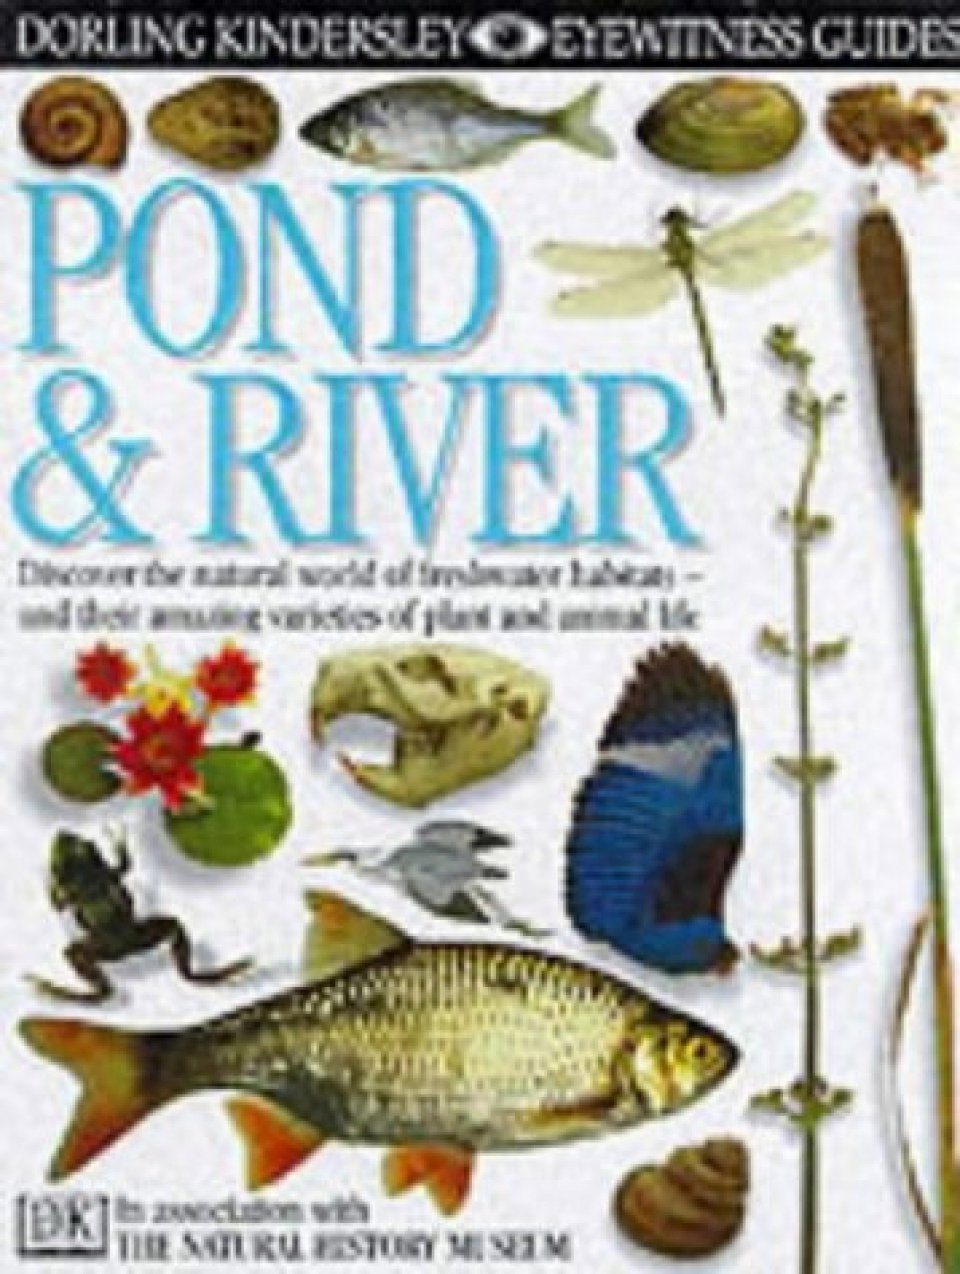 Eyewitness Guide: Pond and River